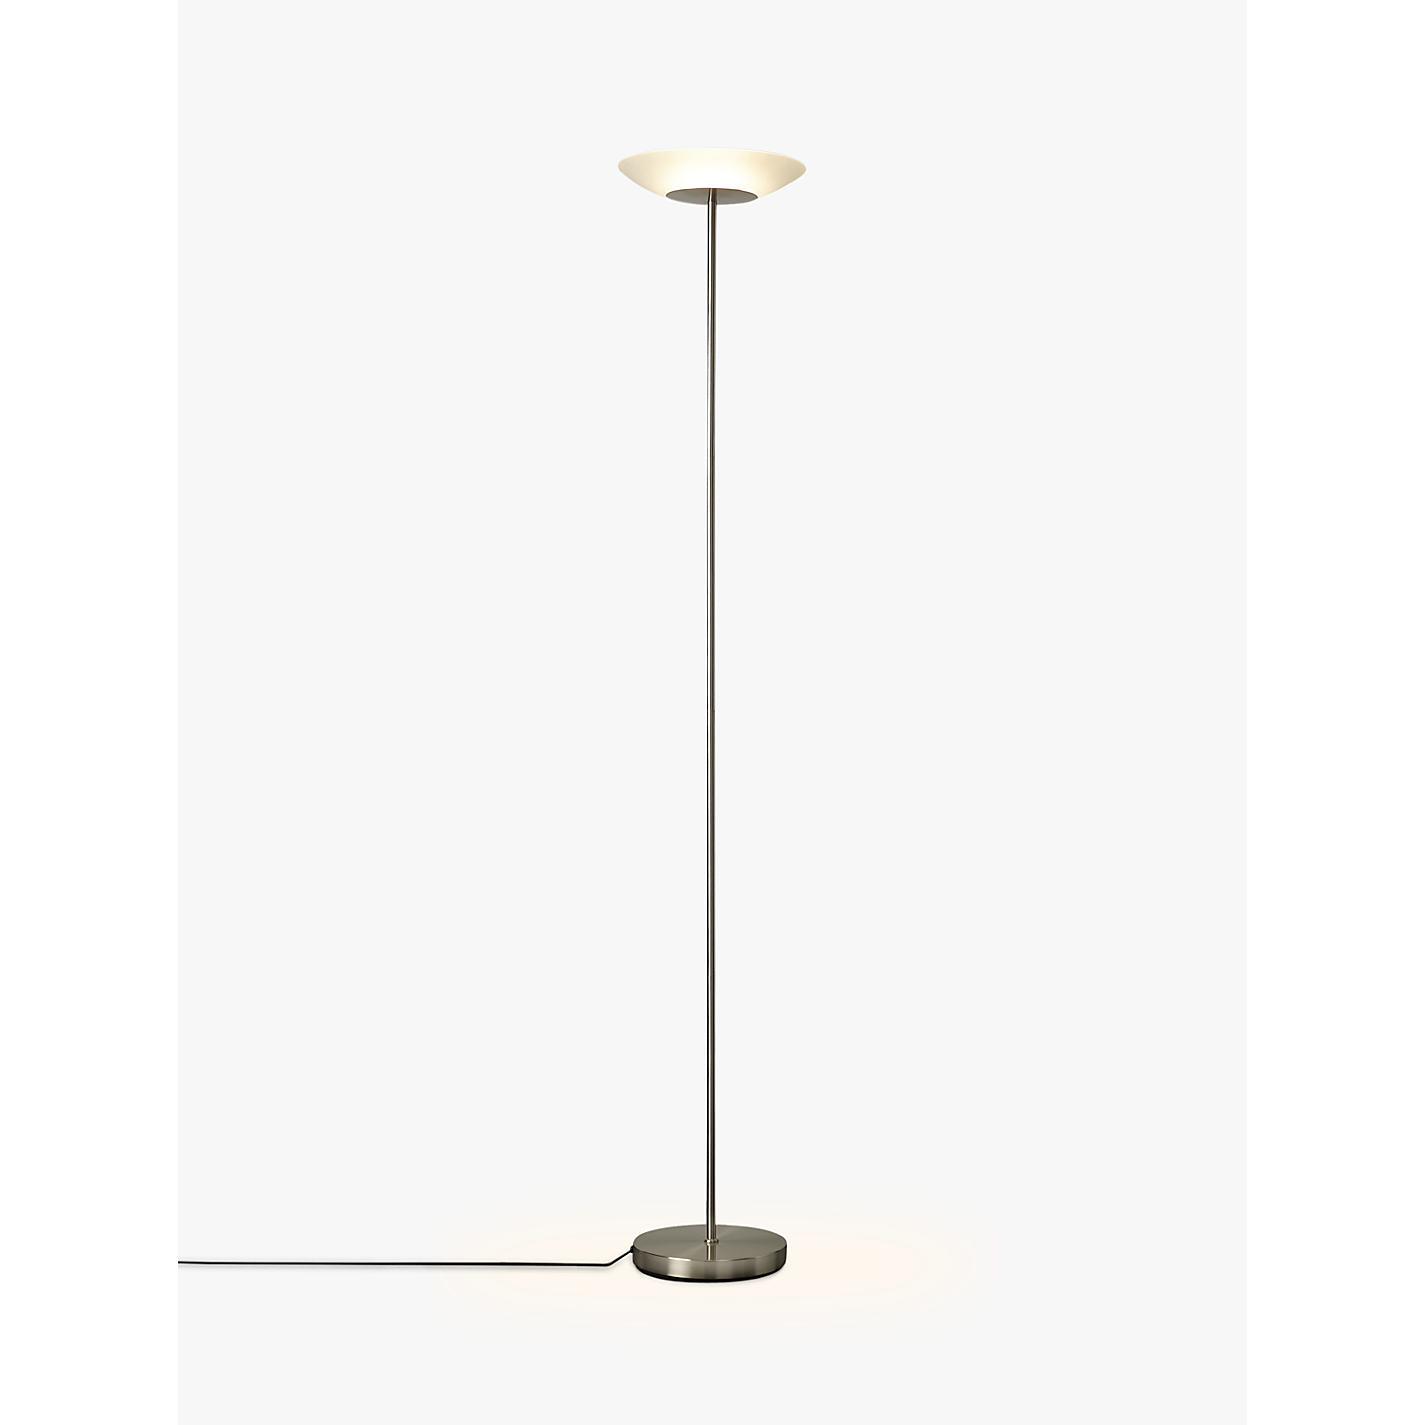 Buy john lewis zeta led uplighter glass top floor lamp satin buy john lewis zeta led uplighter glass top floor lamp satin nickel online at johnlewis mozeypictures Gallery